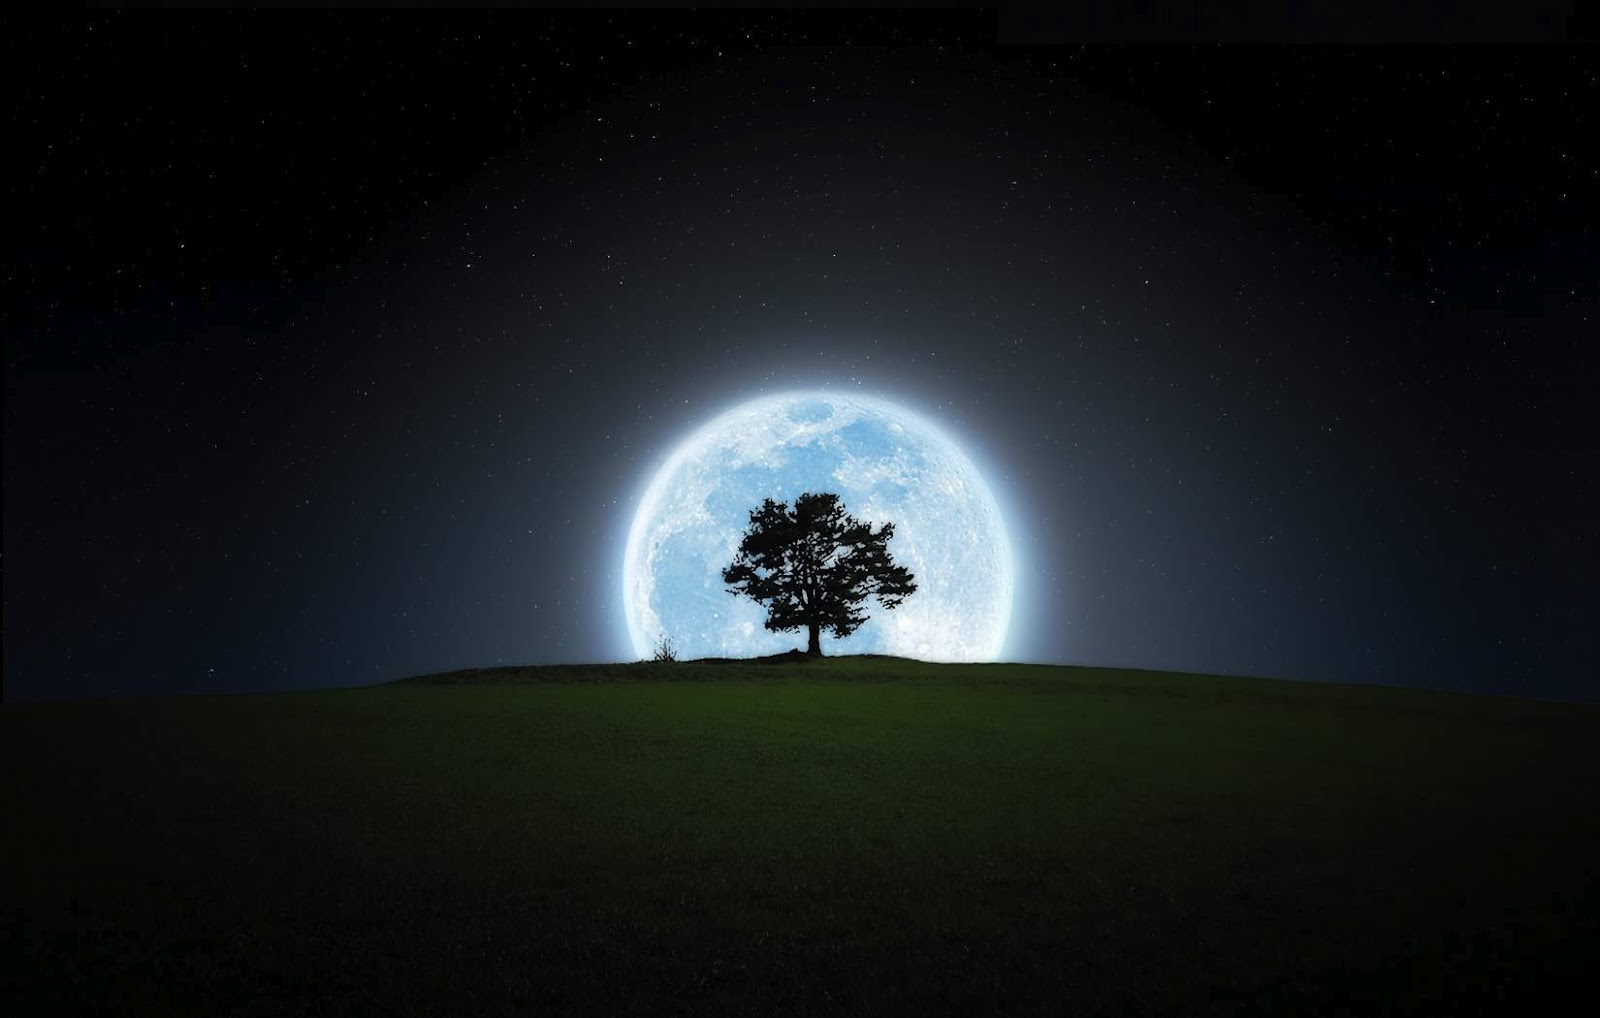 black and white wallpapers full moon and tree wallpaper